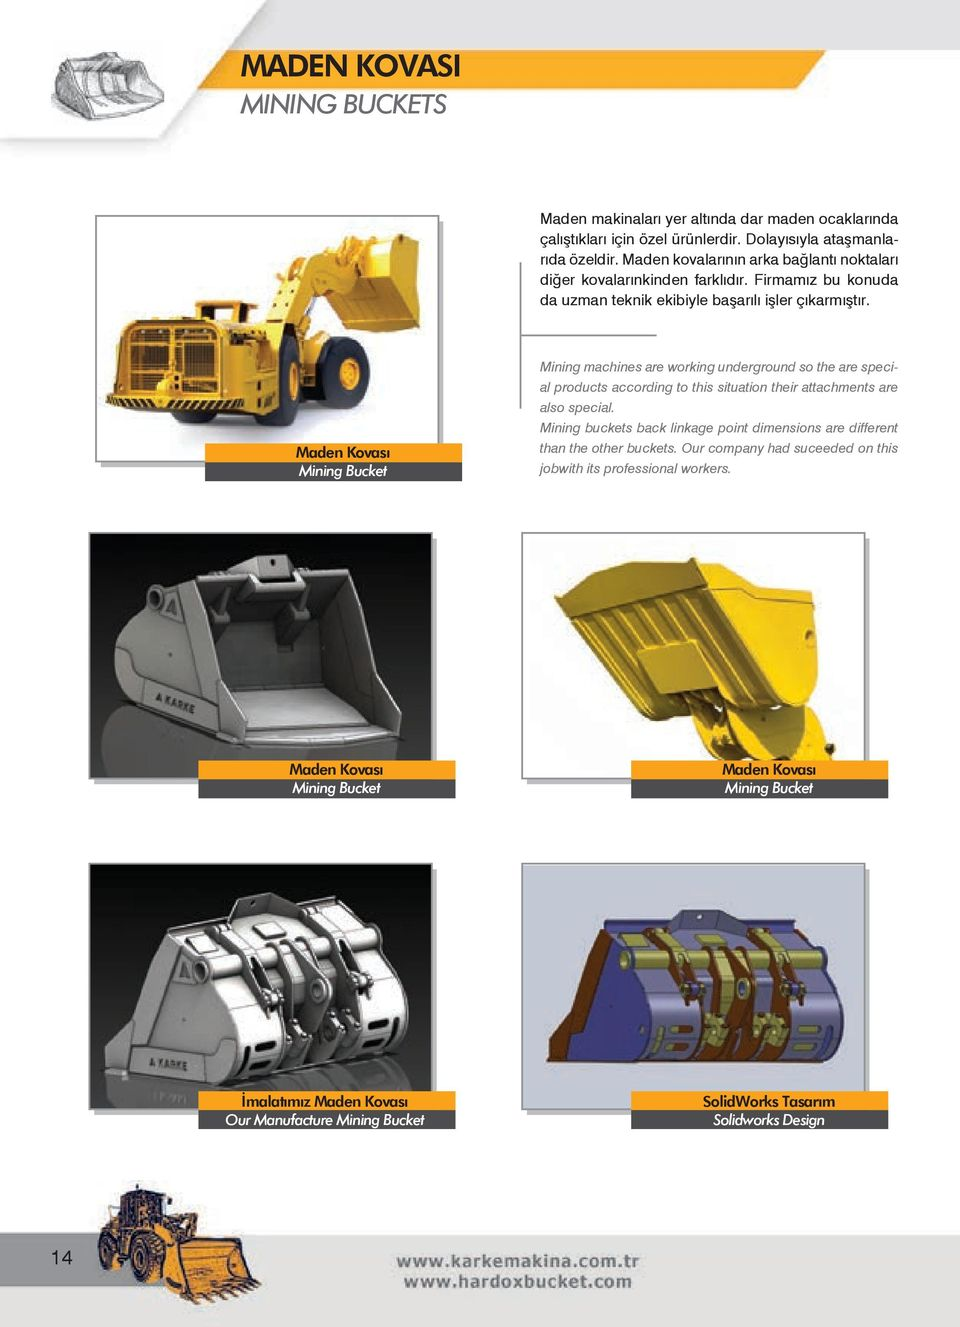 Maden Kovası Mining Bucket Mining machines are working underground so the are special products according to this situation their attachments are also special.